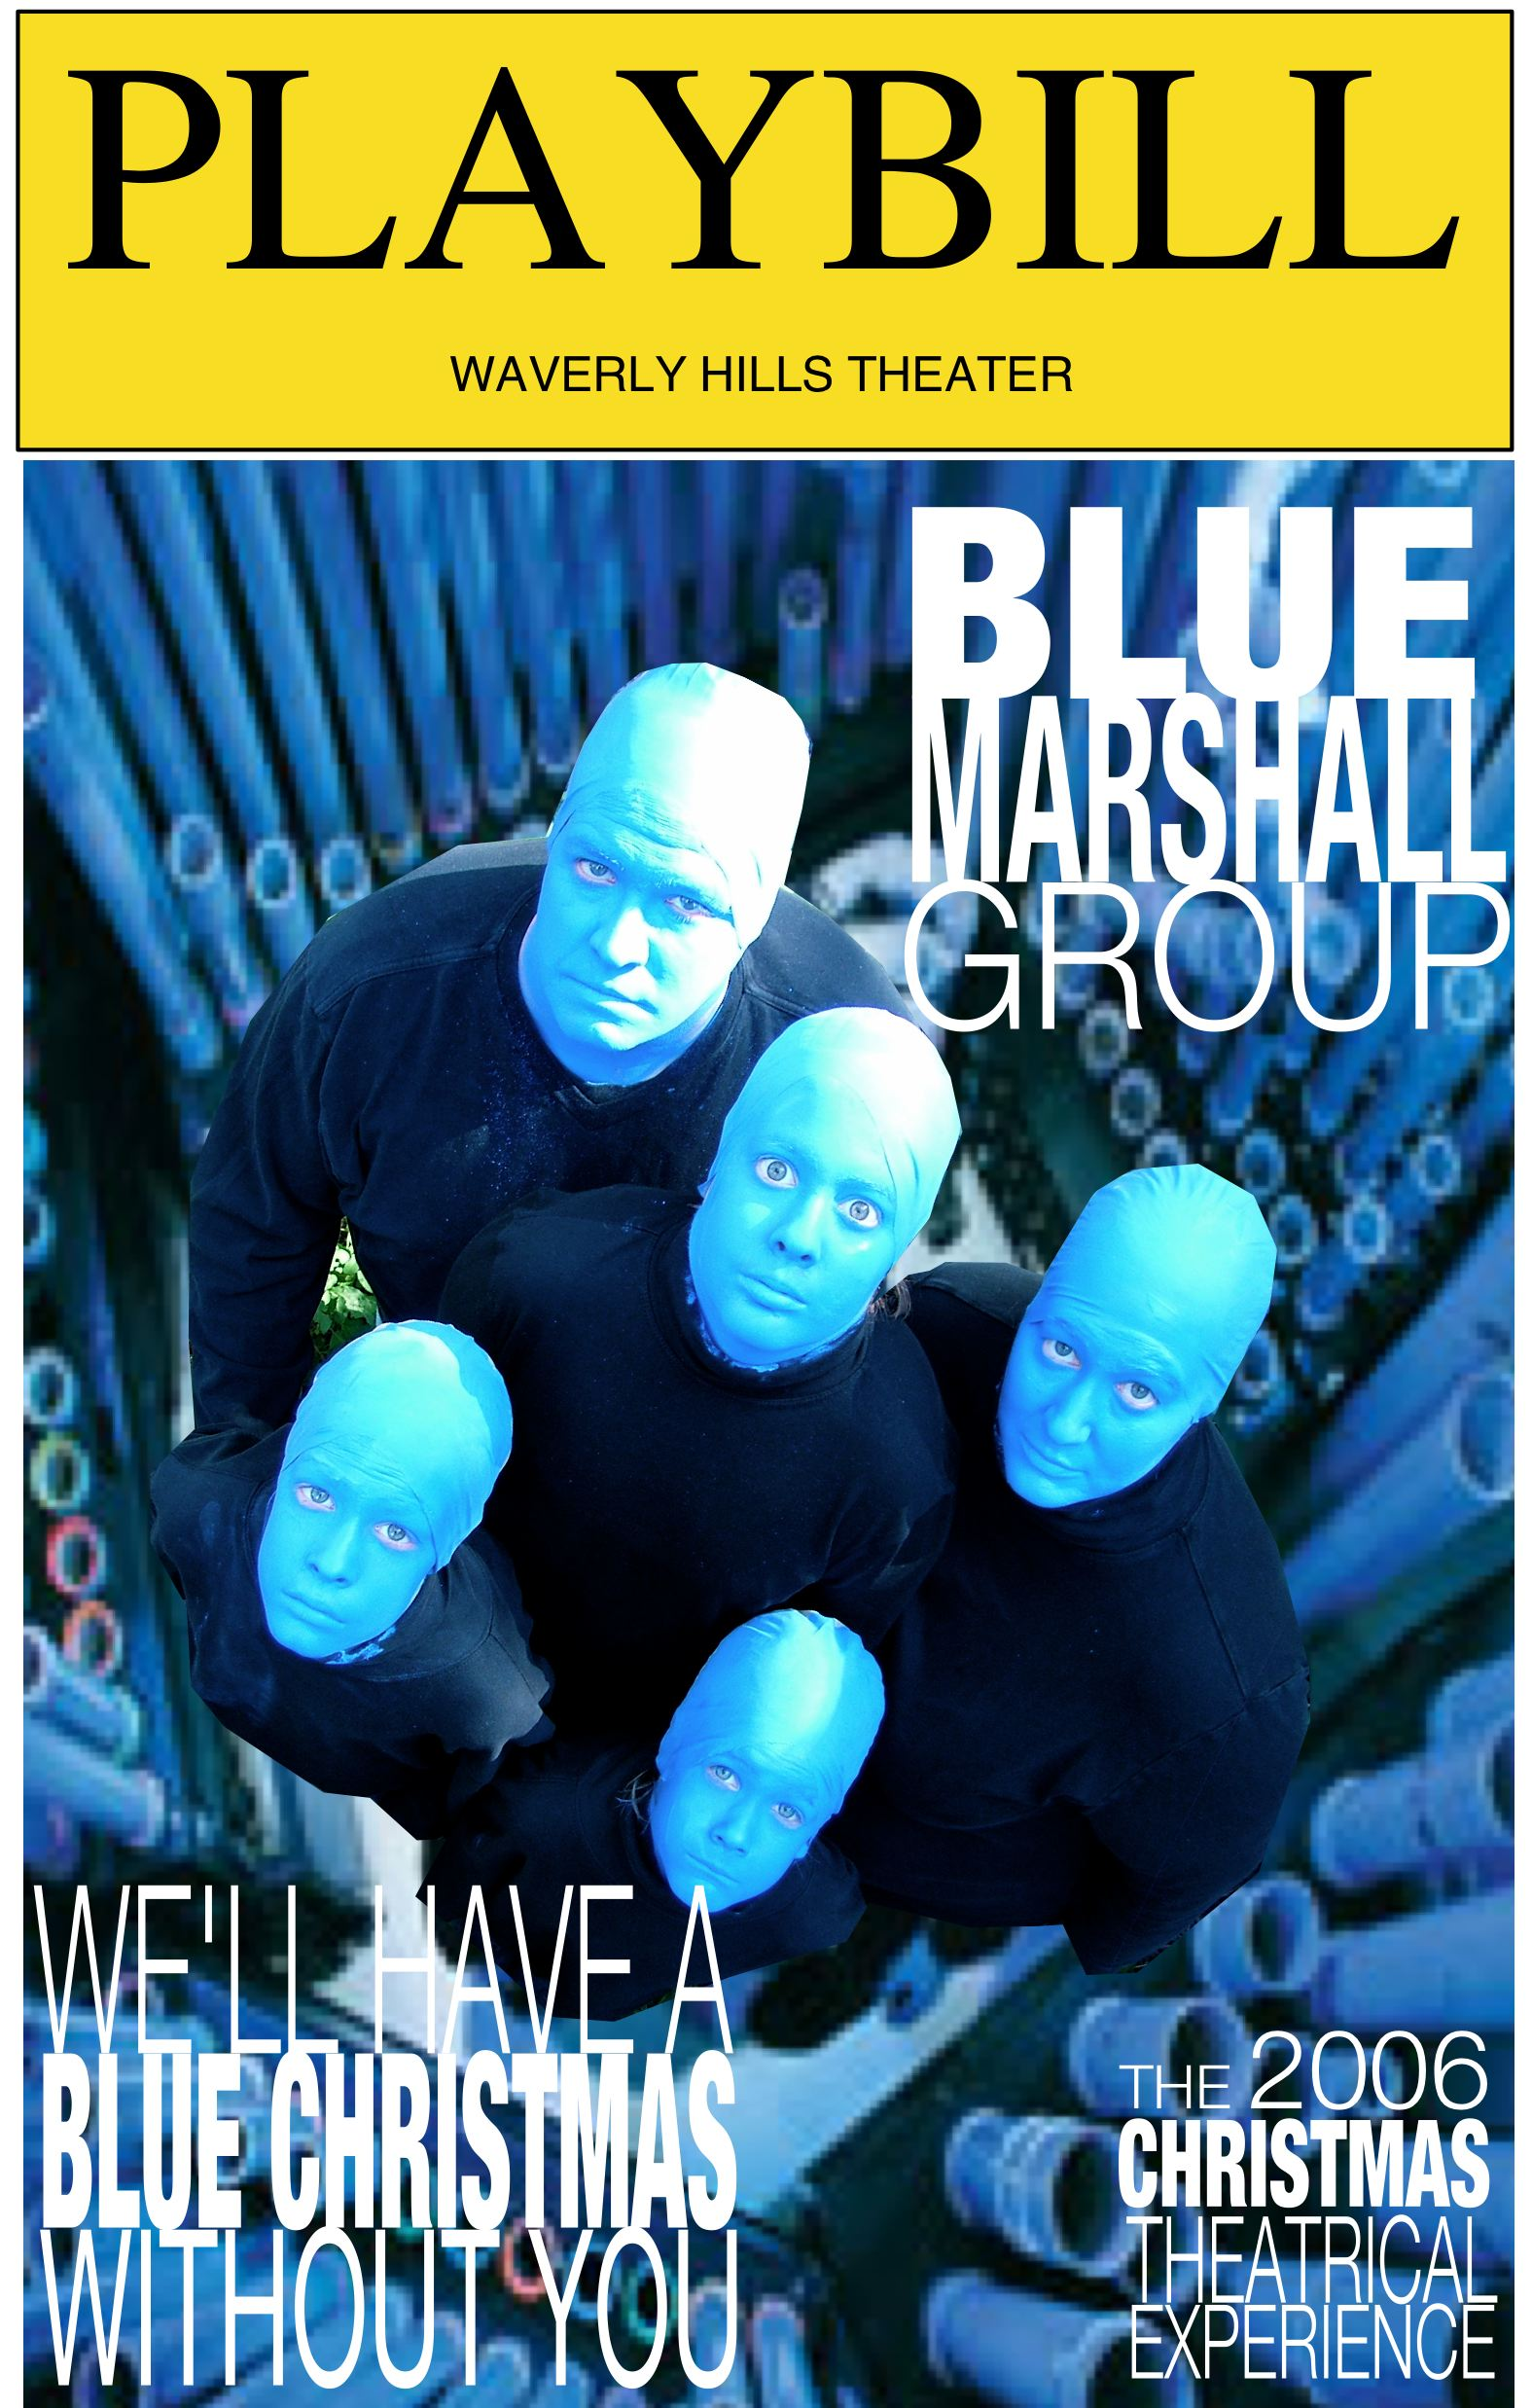 bluemarshall1.jpeg